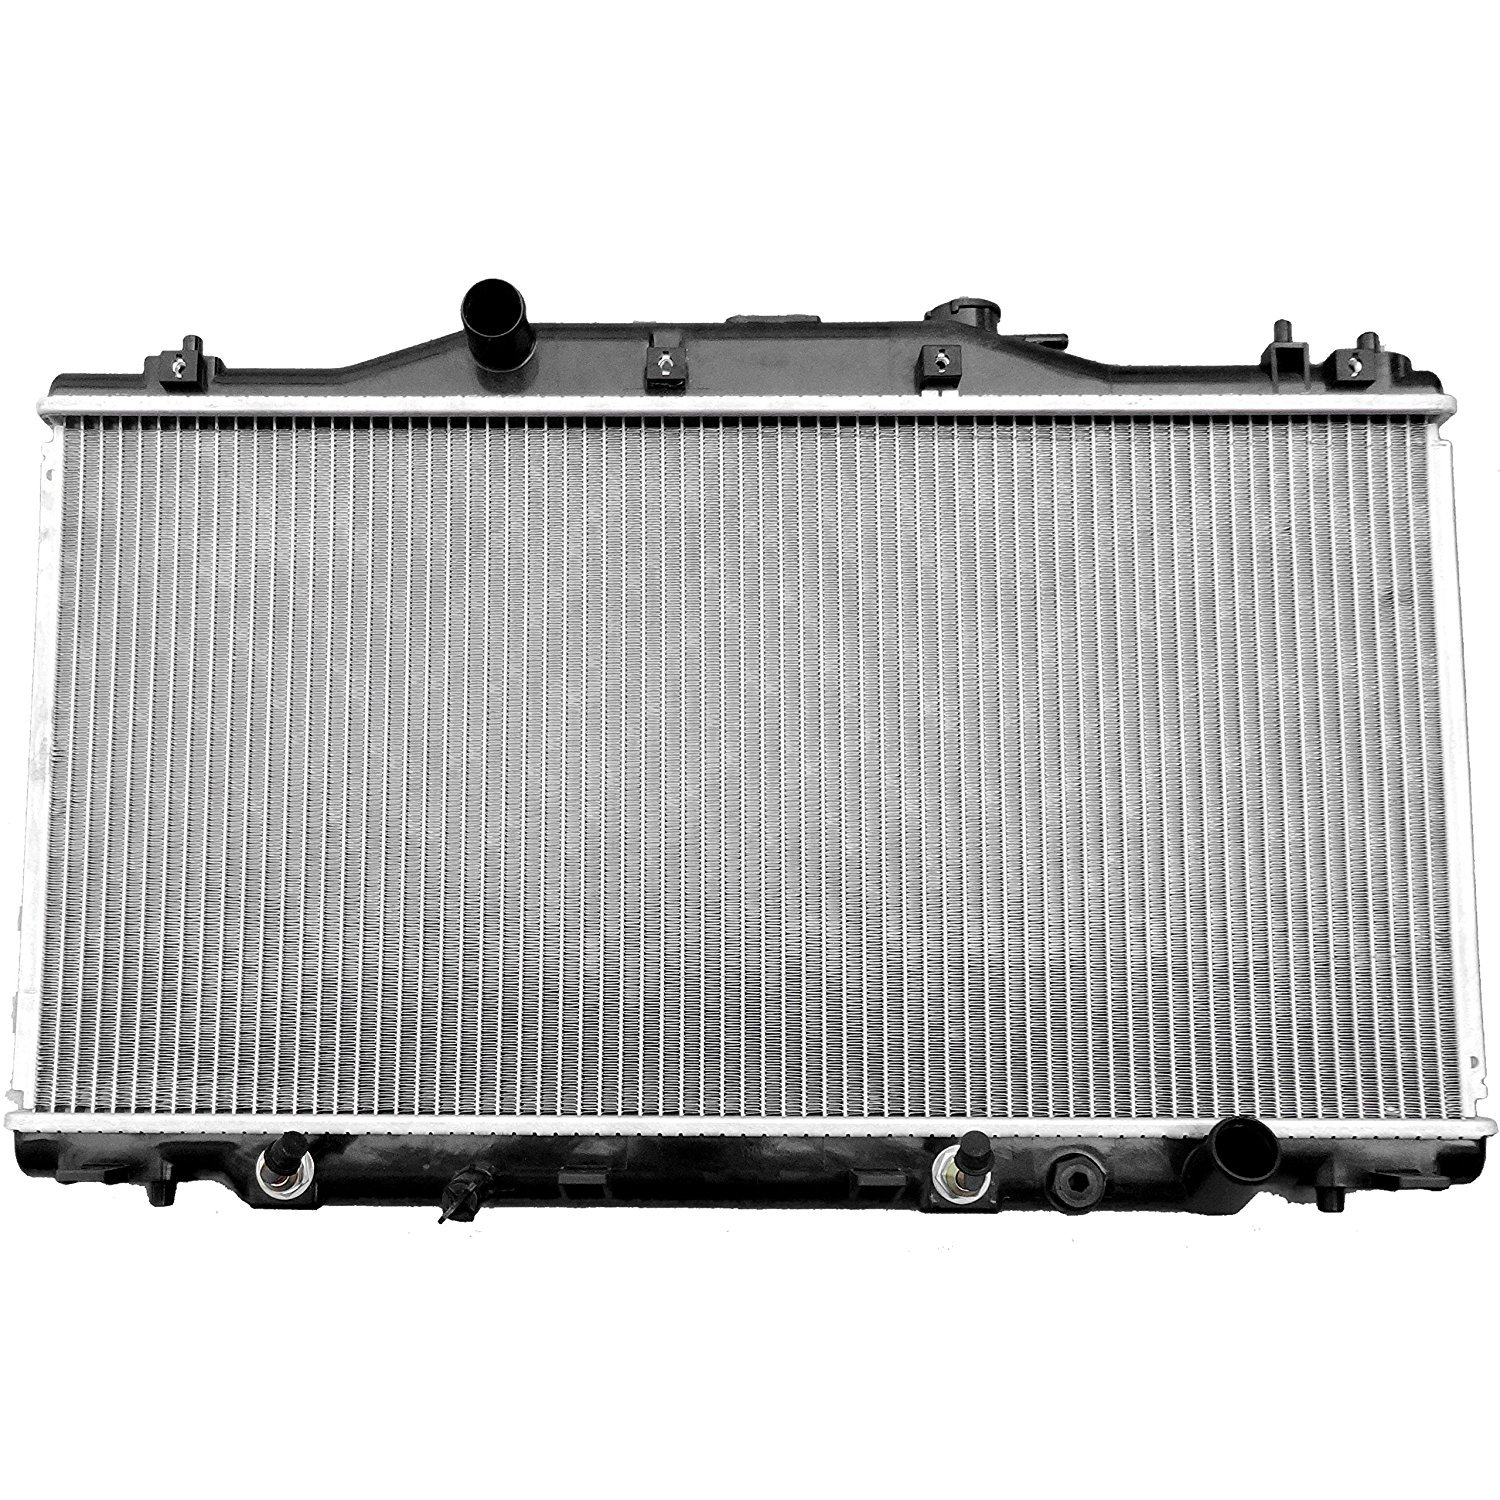 ECCPP Radiator LR2412 for 2002-2006 Acura RSX Base/Type-S L4 2.0L by ECCPP